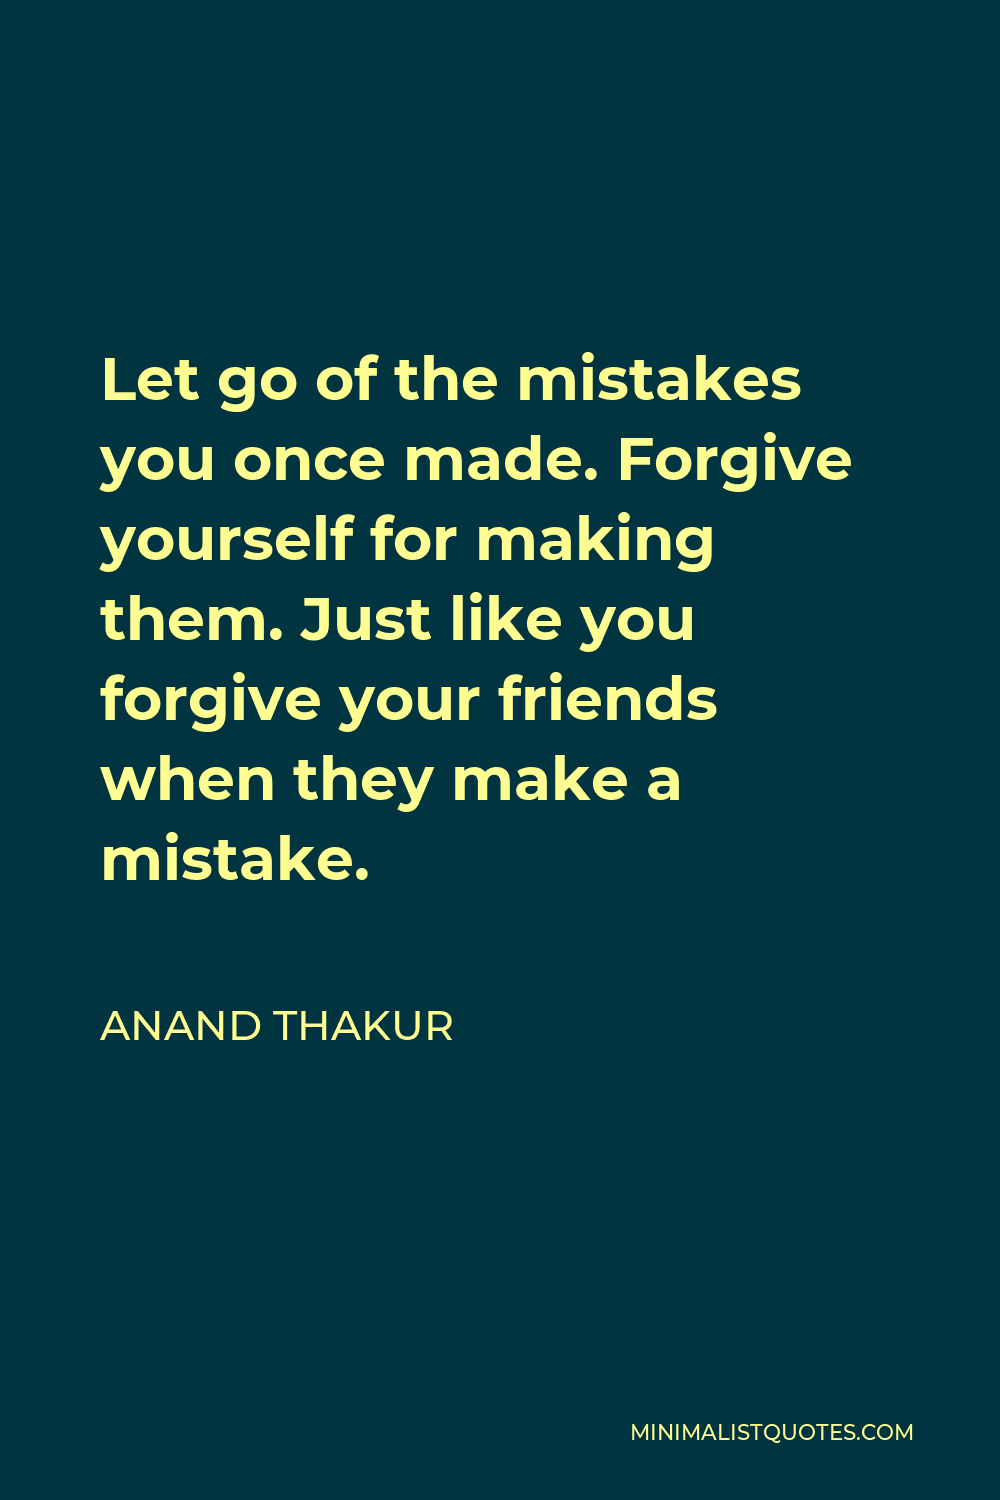 Anand Thakur Quote - Let go of the mistakes you once made. Forgive yourself for making them just like you forgive your friends when they make a mistake.